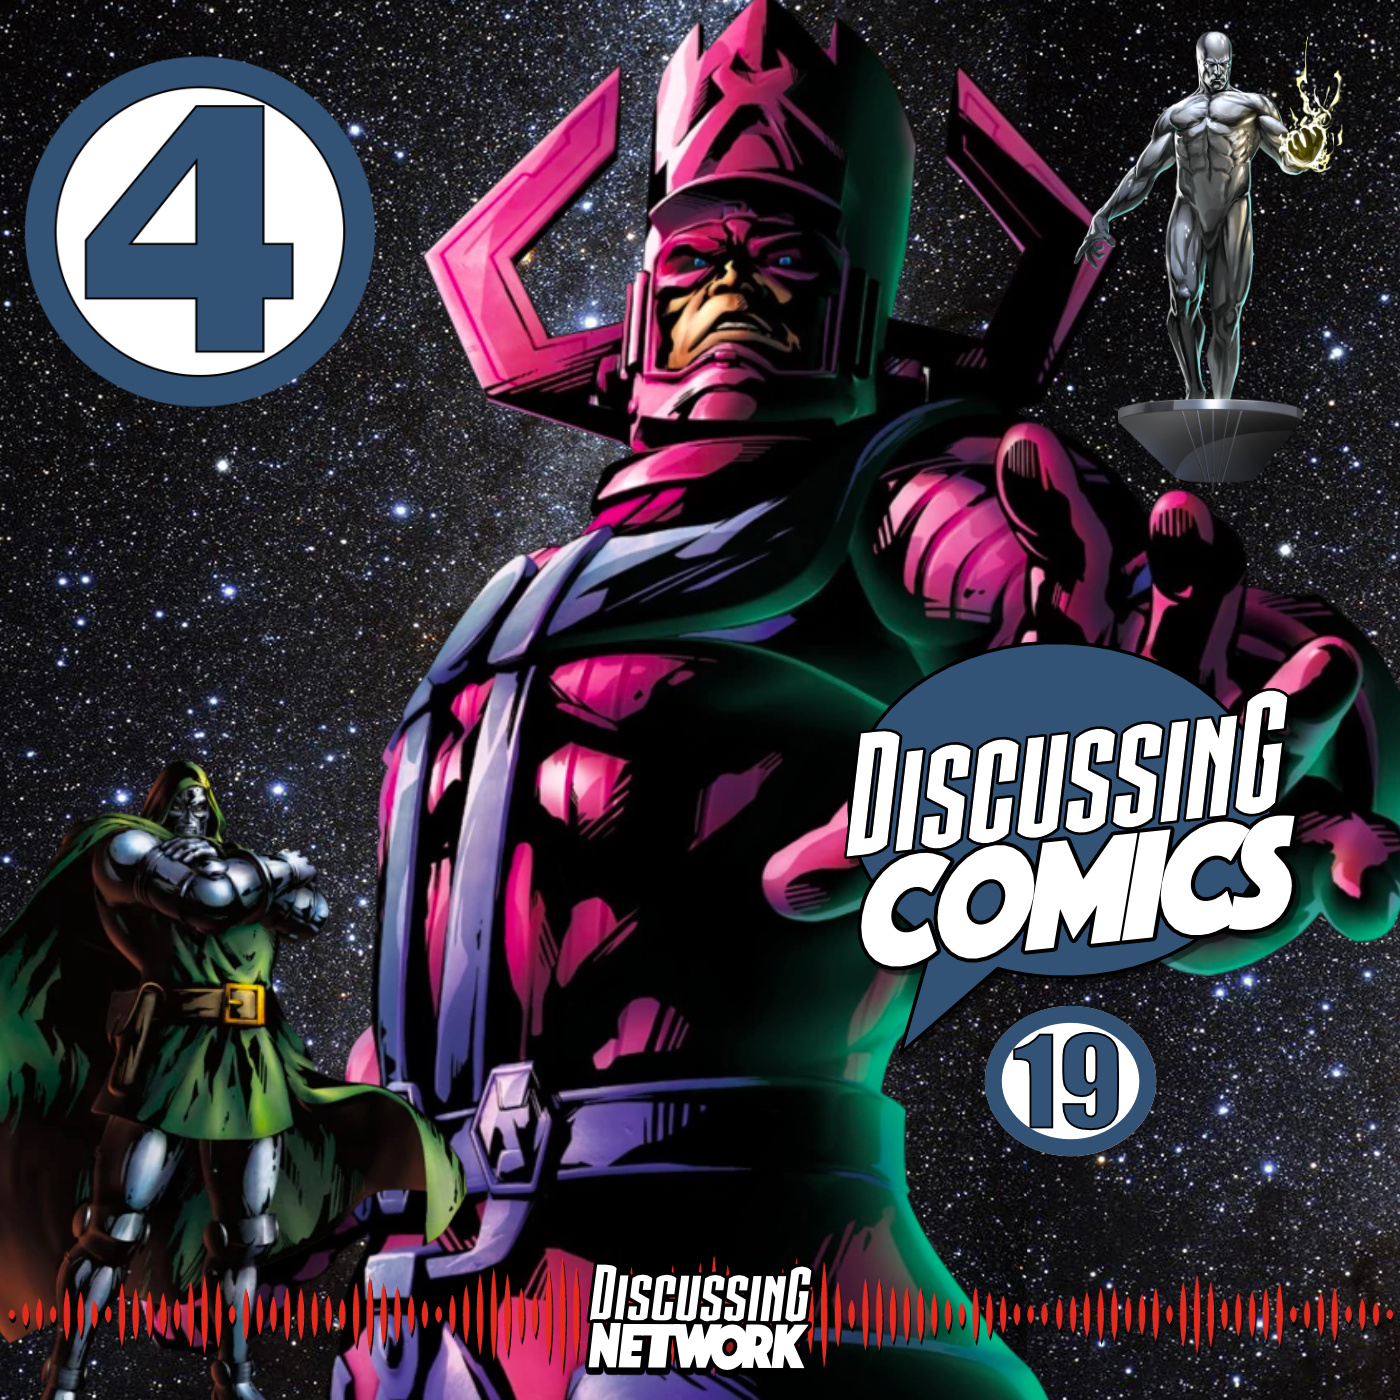 Discussing the Fantastic Four